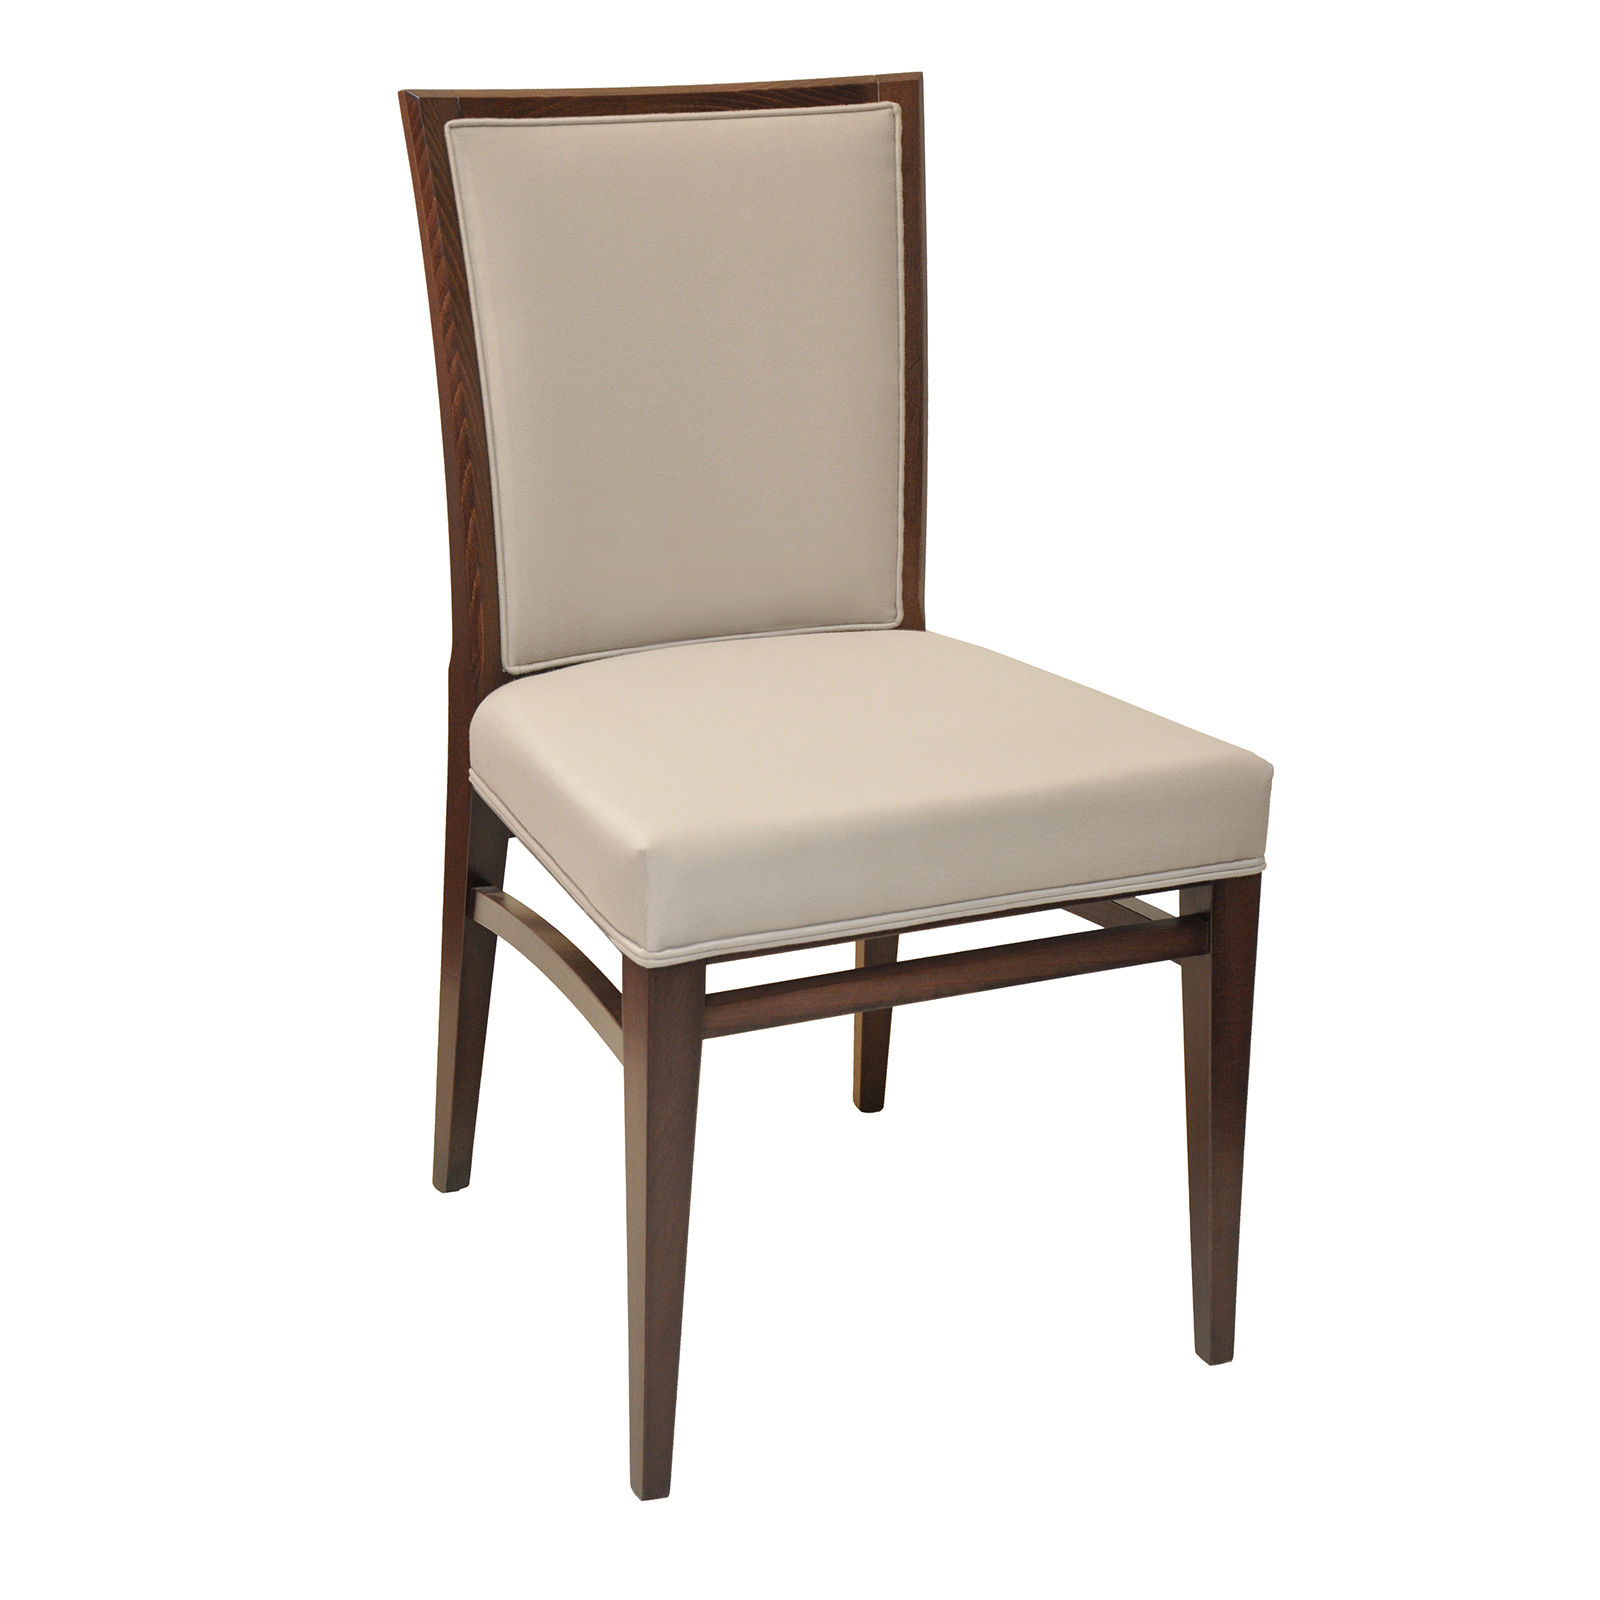 Florida Seating CN-JESSICA S GR1 chair, side, indoor